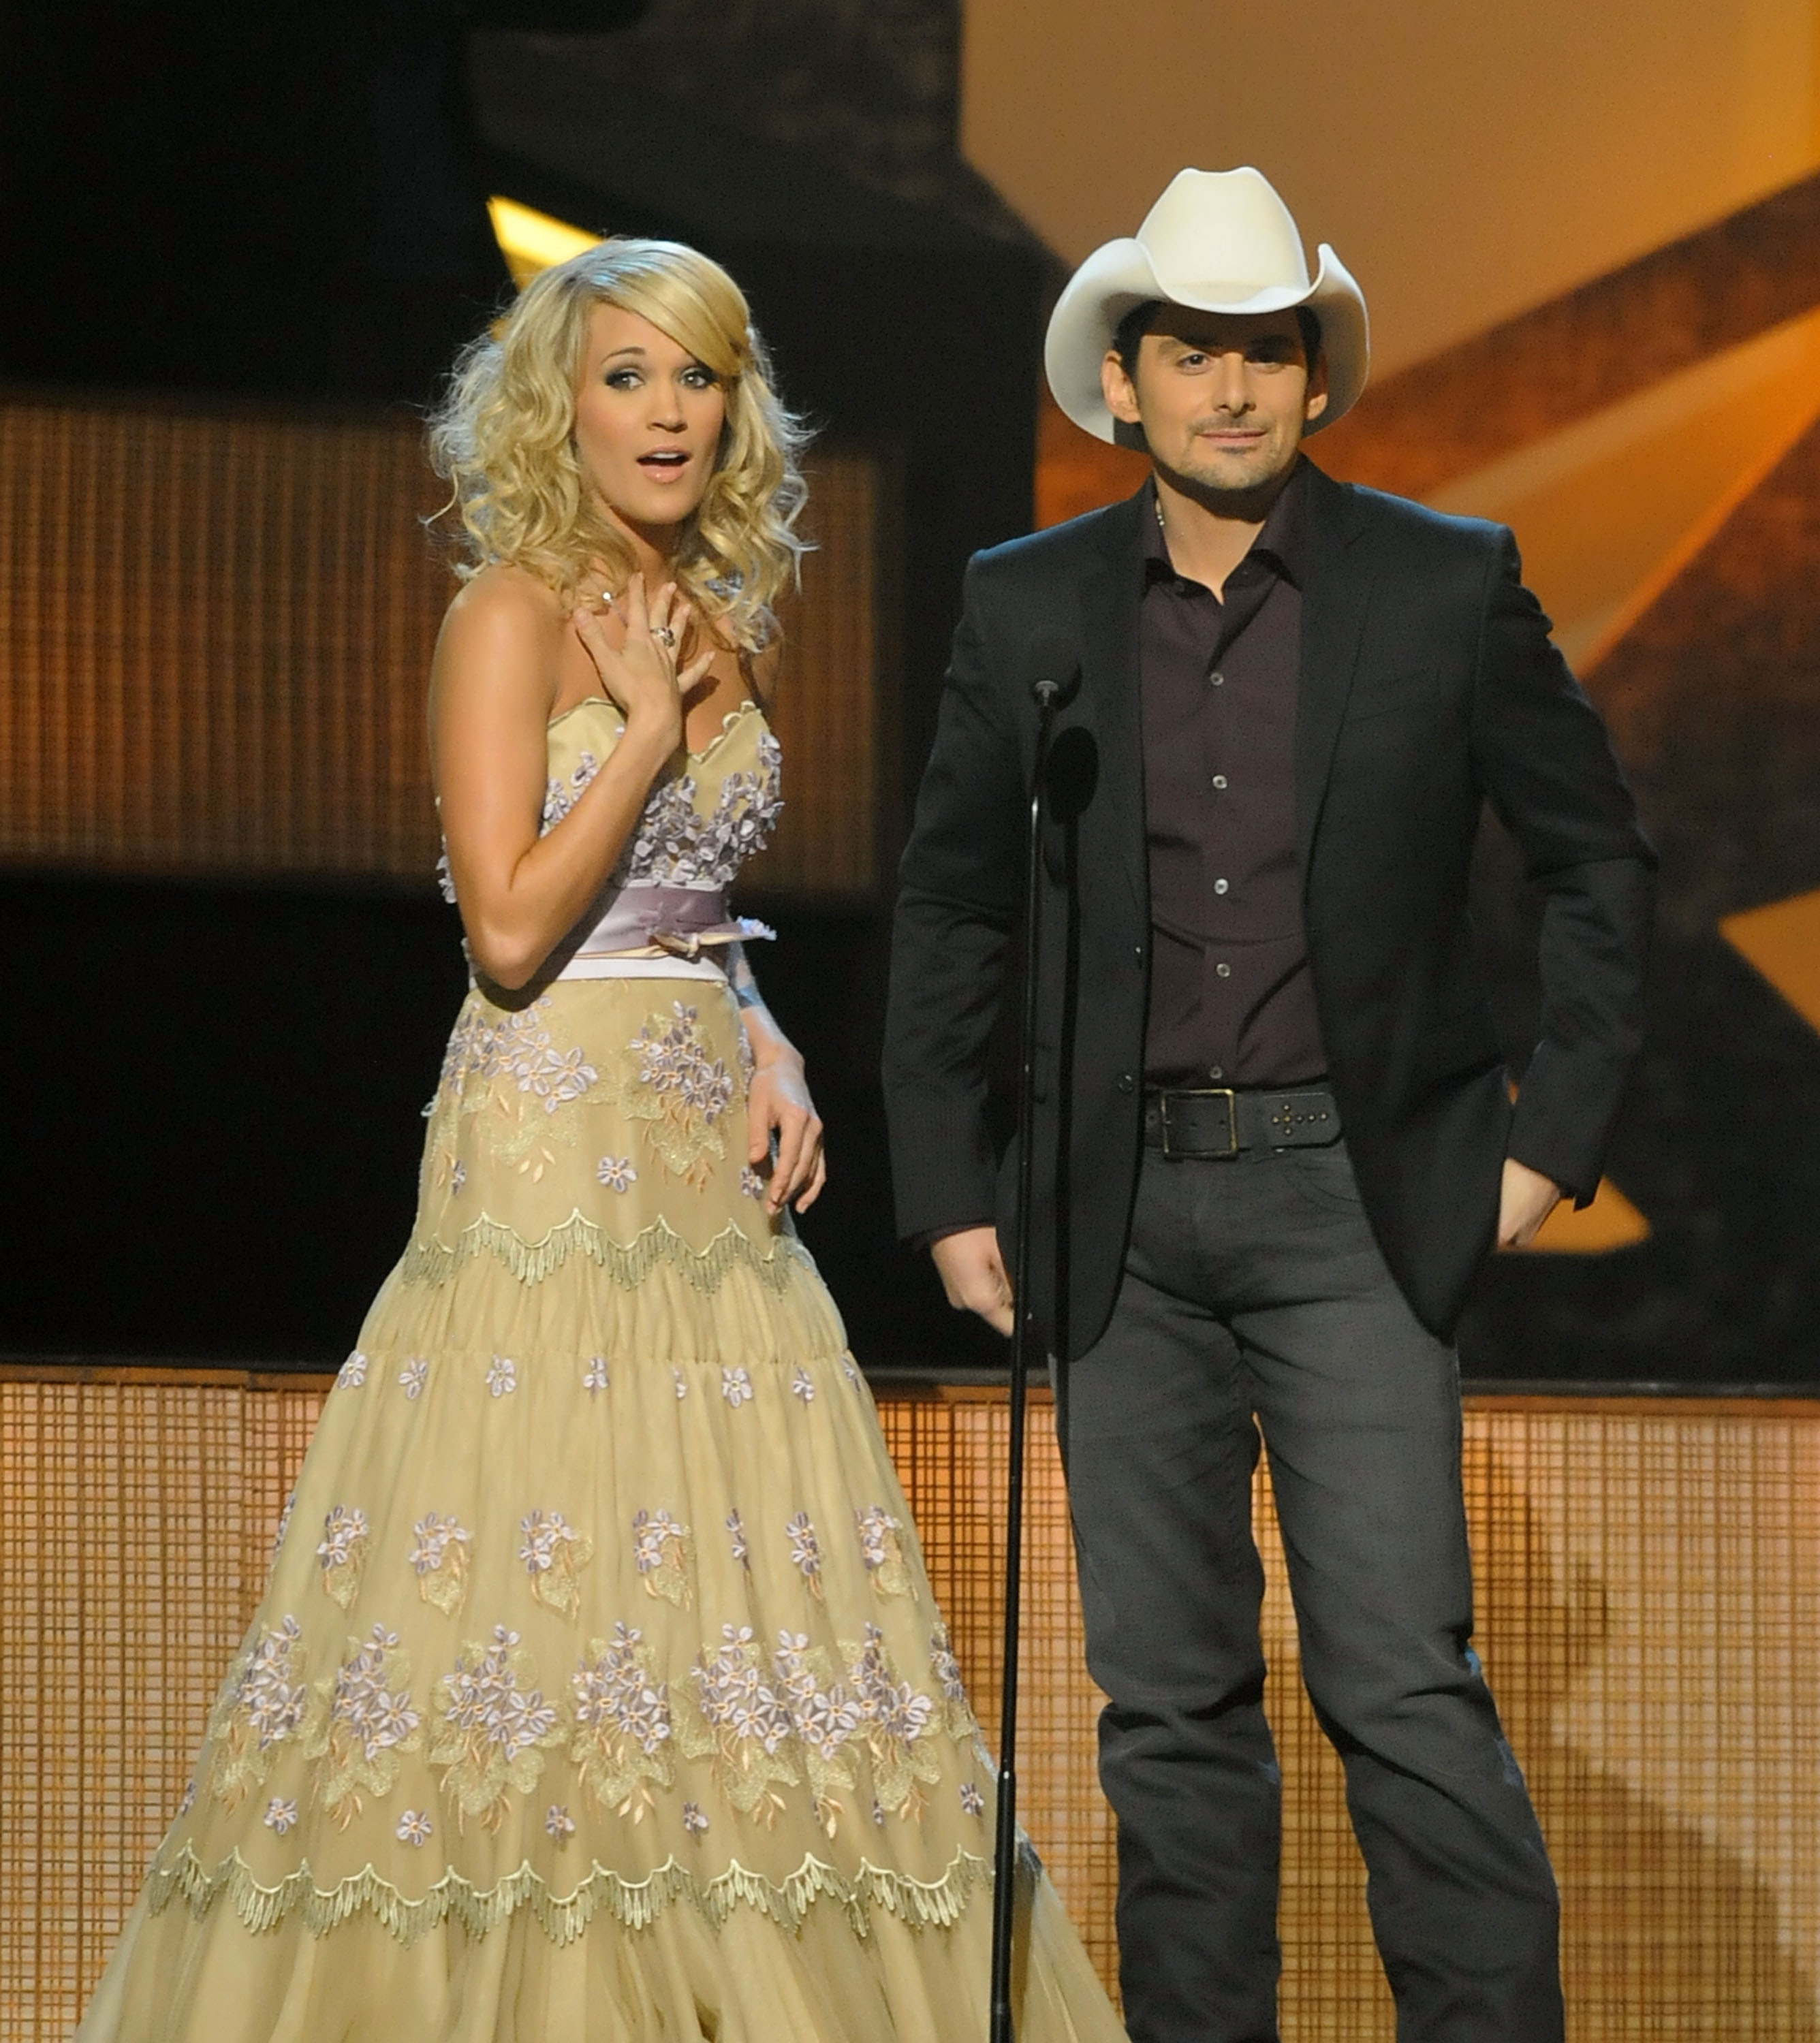 Carrie Underwood and Brad Paisley at the 43rd Annual CMA Awards on November 11, 2009; Photo by Rick Diamond/Getty Images